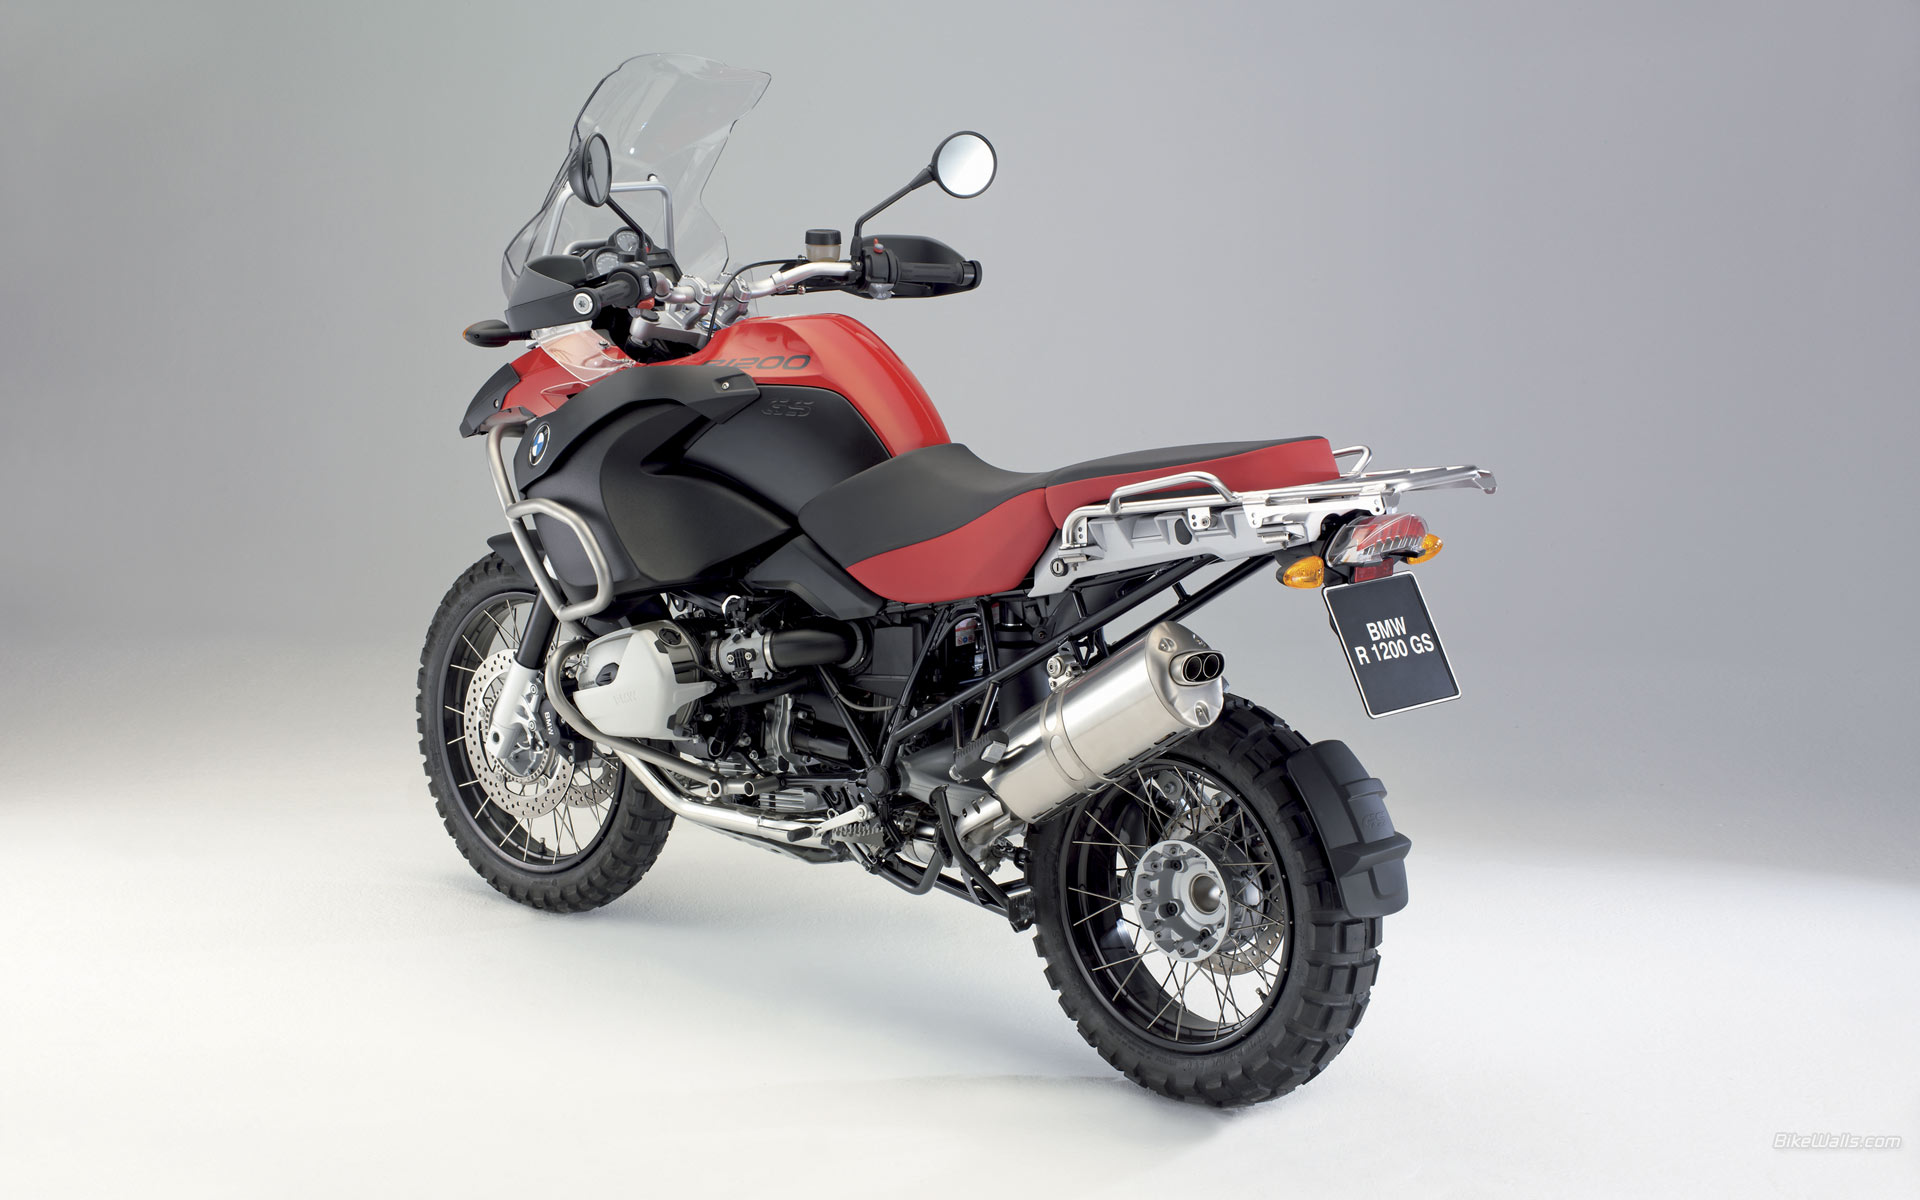 2008 Bmw R1200gs Adventure Image 12